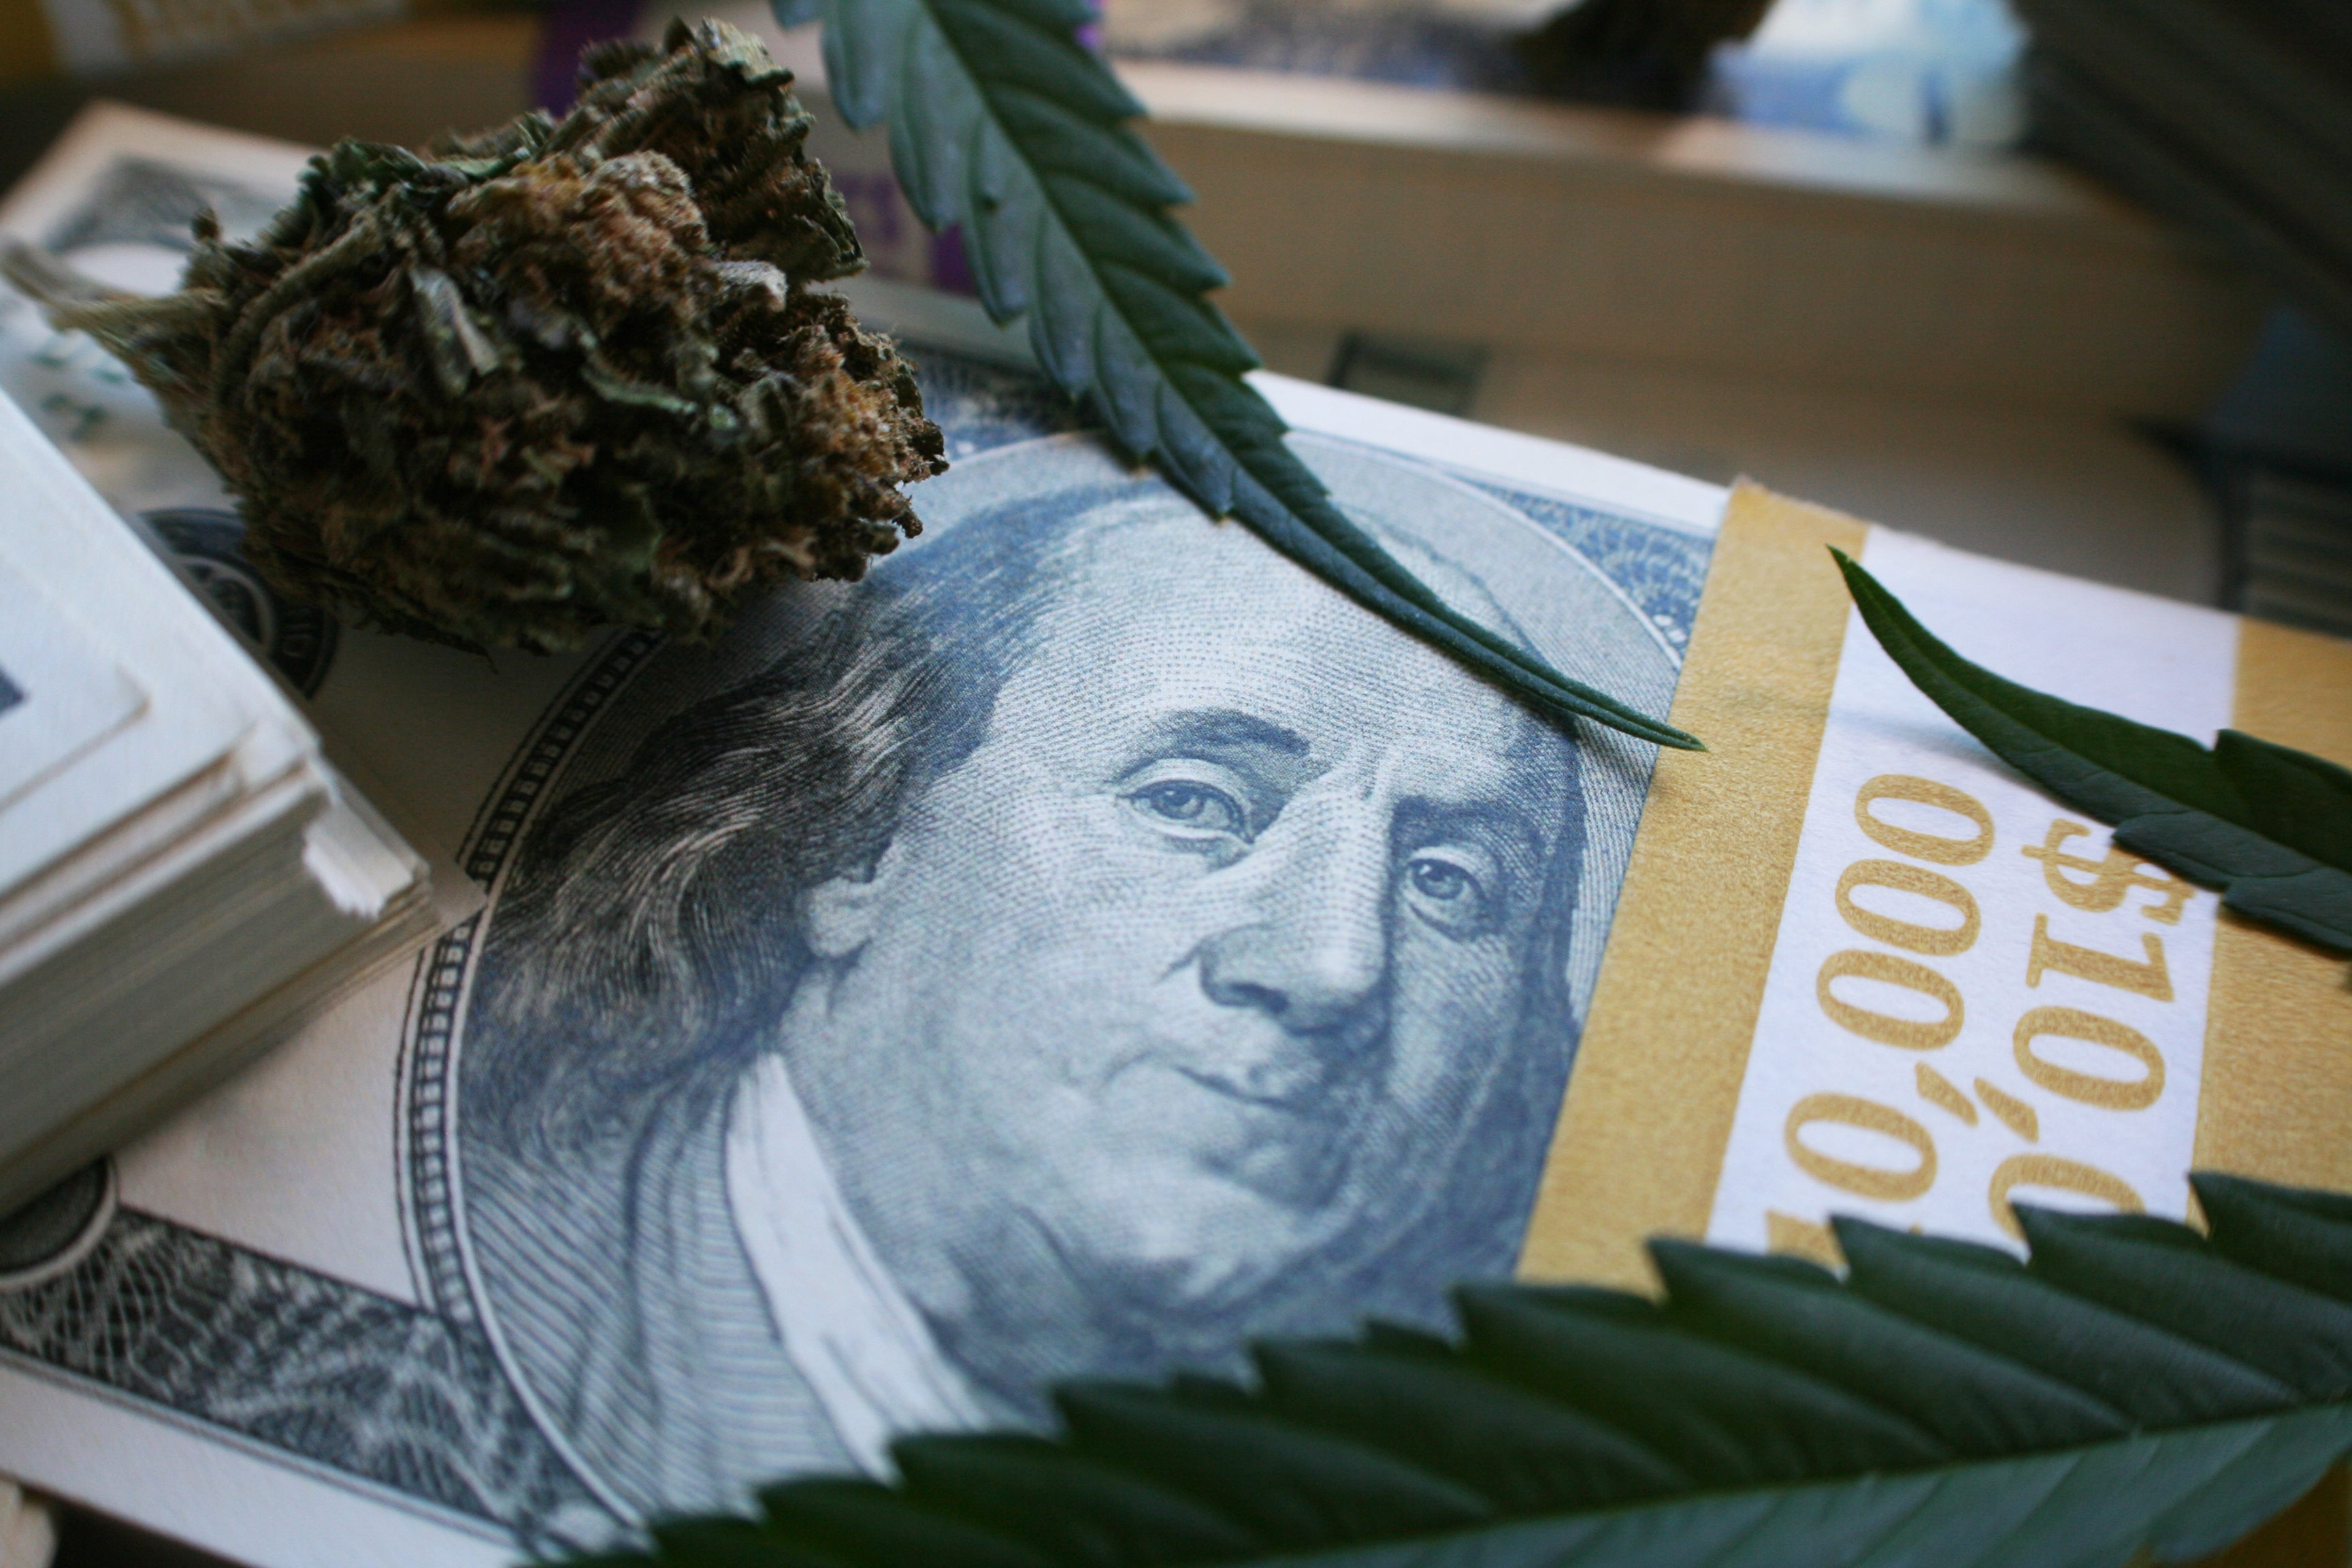 Cannabis and a stack of hundred dollar bills.